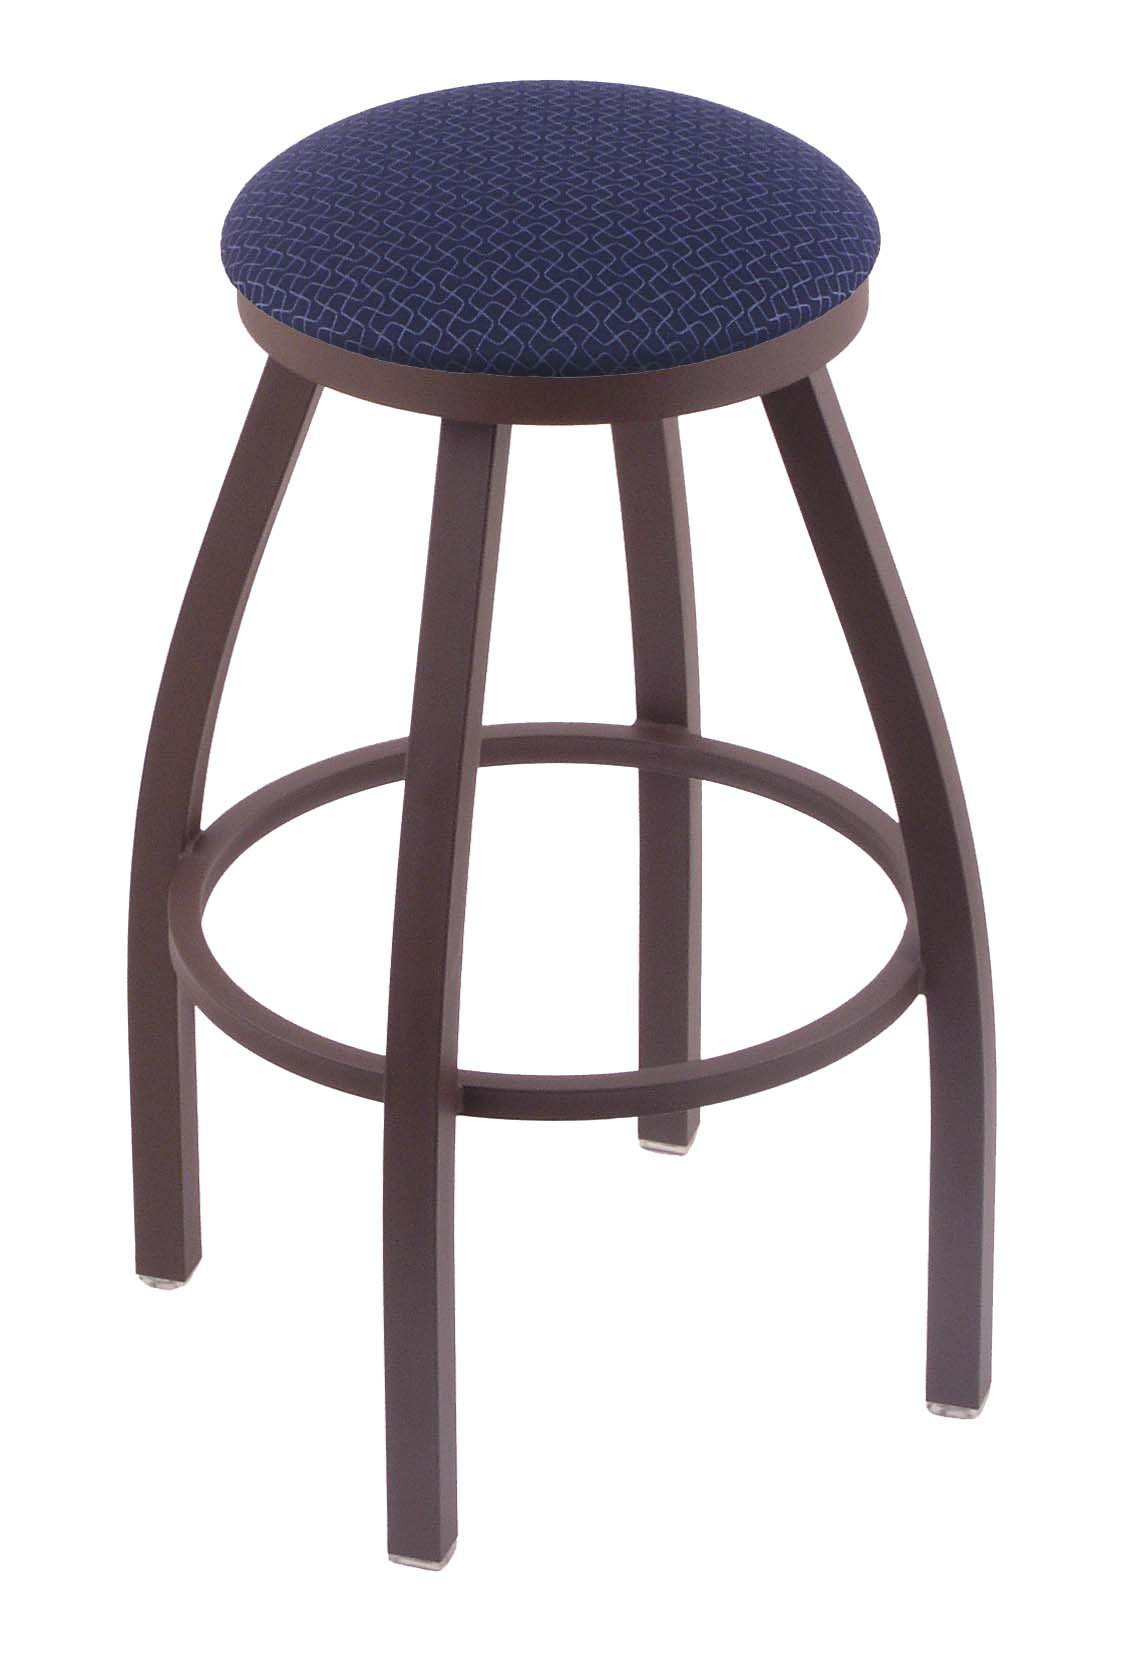 Holland Bar Stool Co. 802 Misha 25'' Counter Stool with Bronze Finish and Swivel Seat, Axis Denim by Holland Bar Stool Co.